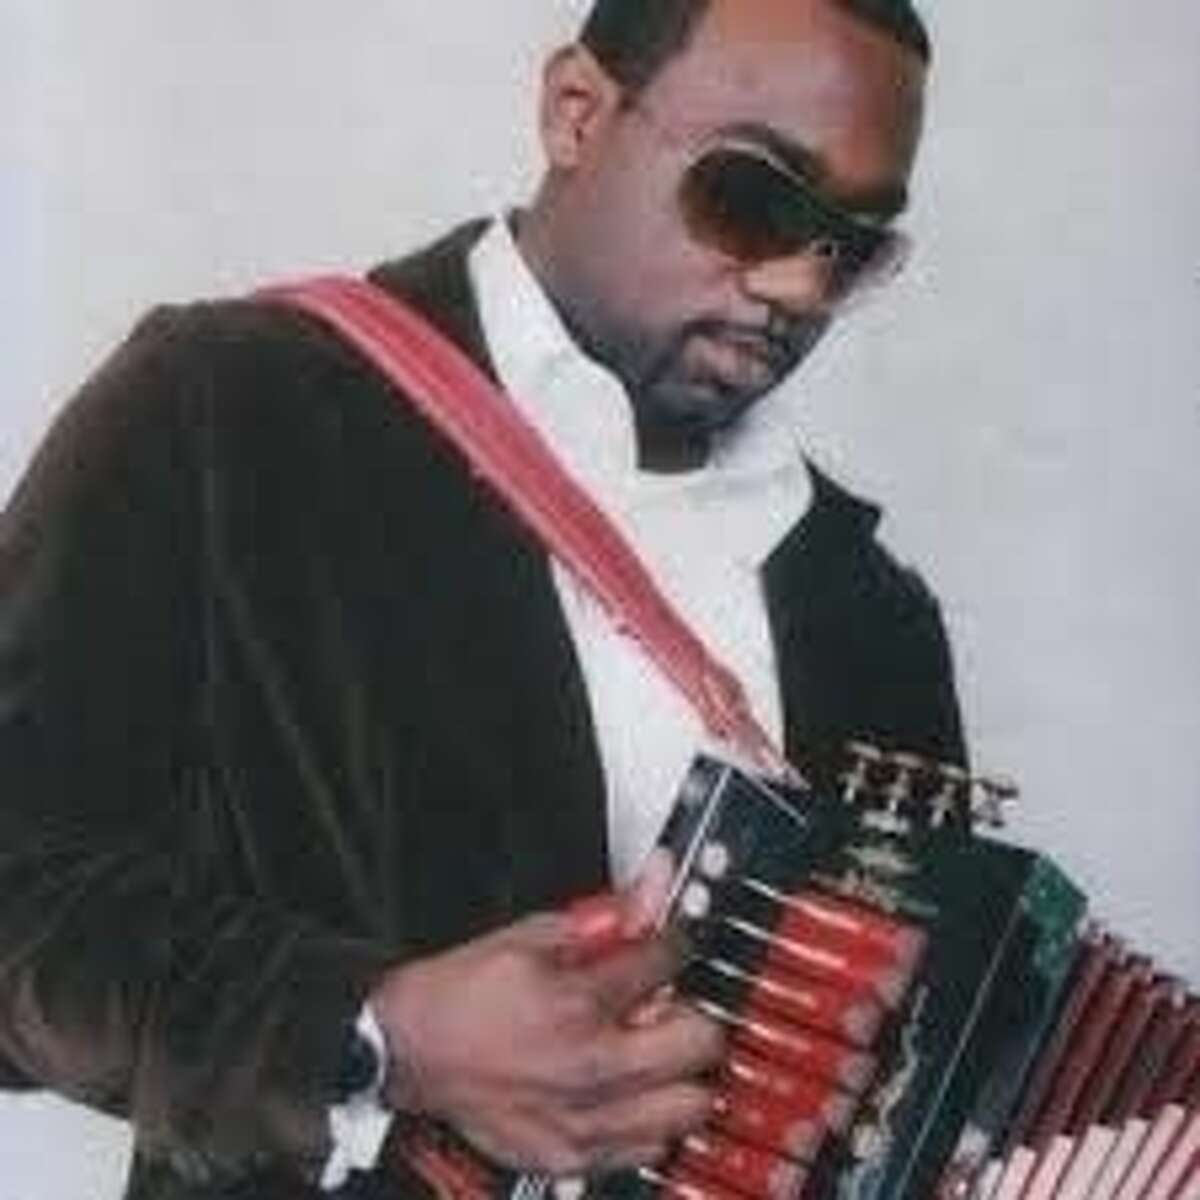 Raa-Raa and Da Zydeco Allstarz will perform at Mardi Gras on the Stroll in Magnolia on Feb. 6.